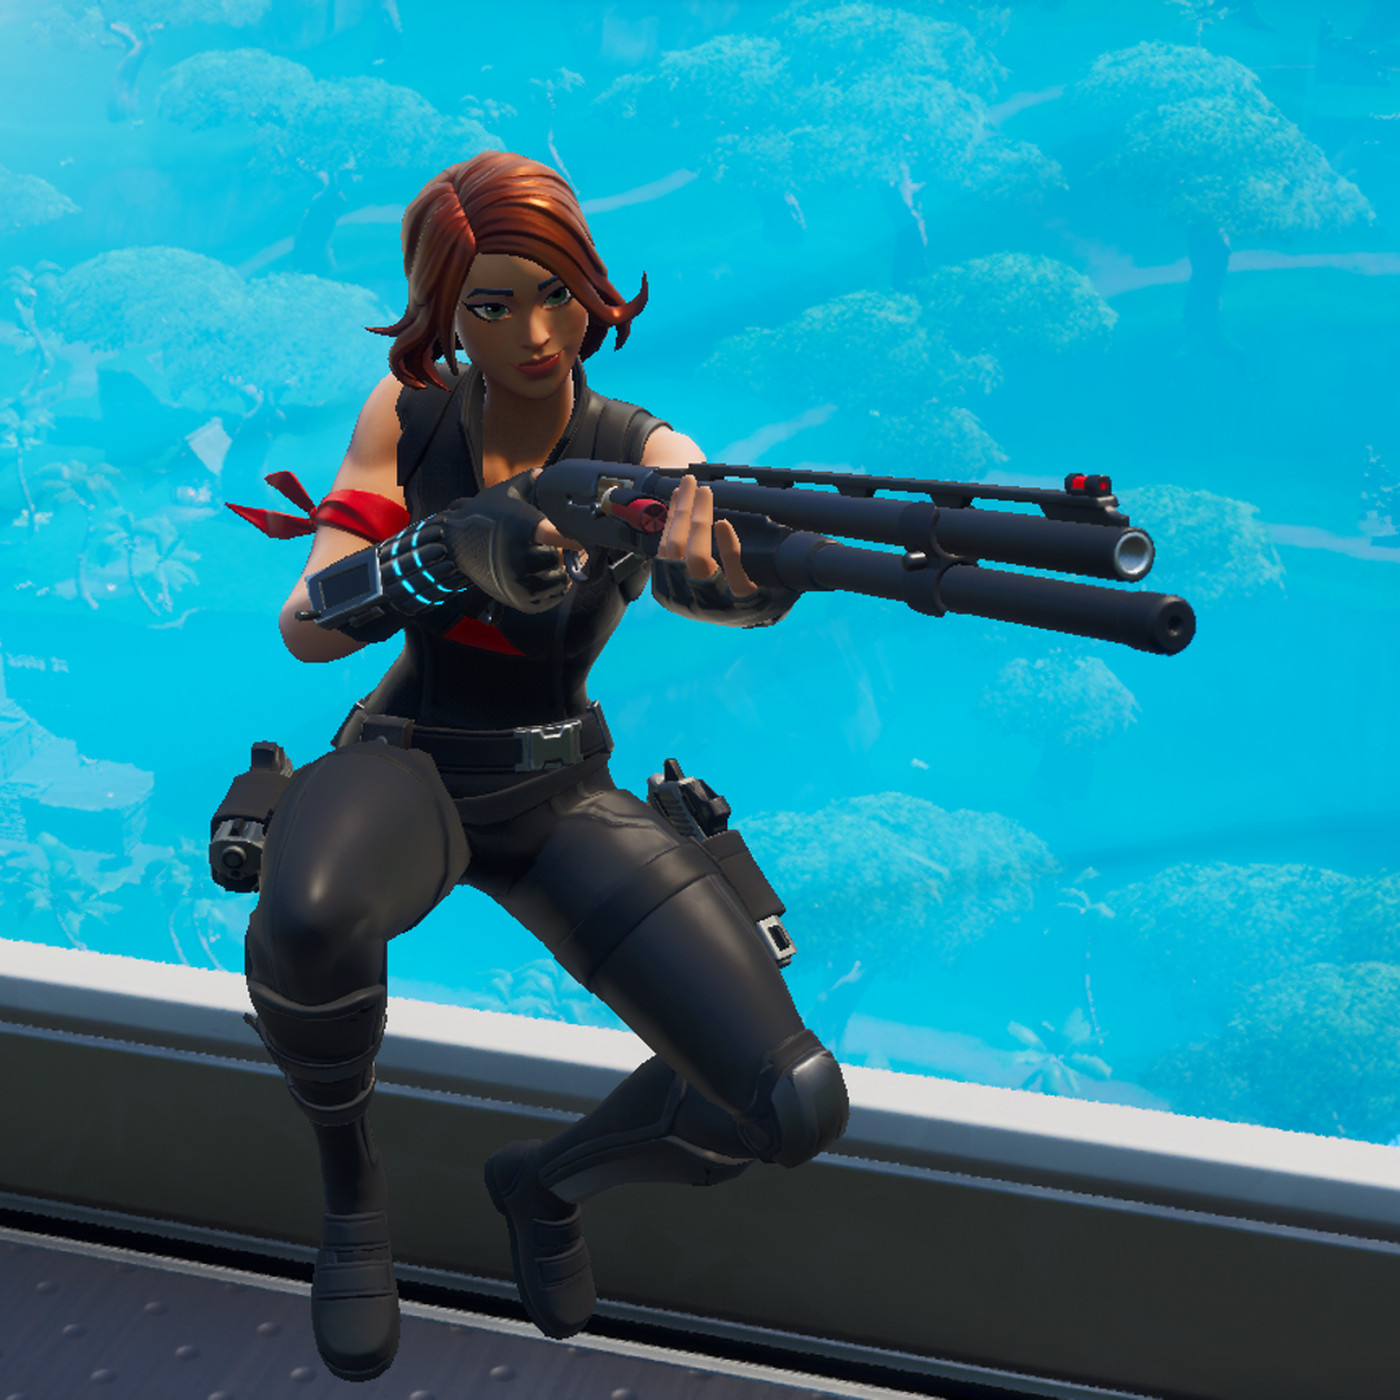 Fortnite's Pump Shotgun replacement doesn't quite fill the void